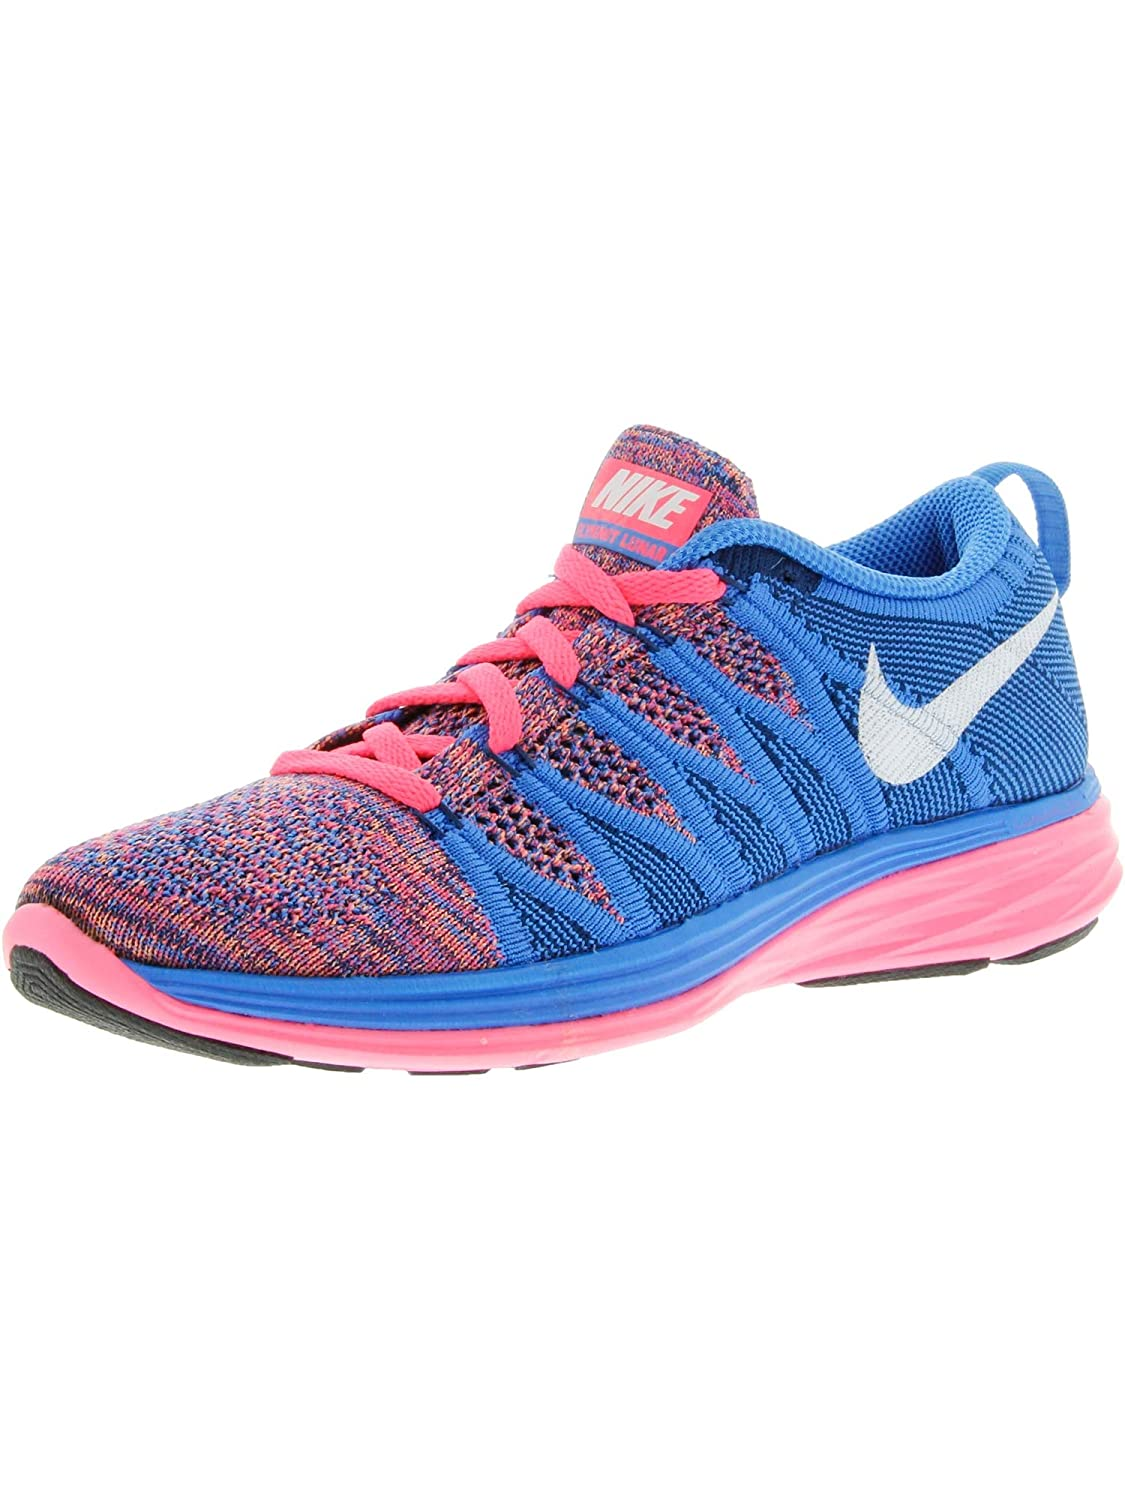 various colors 5d6bf 856a0 Amazon.com   Nike Women s Flyknit Lunar2 Running Training Shoes   Road  Running